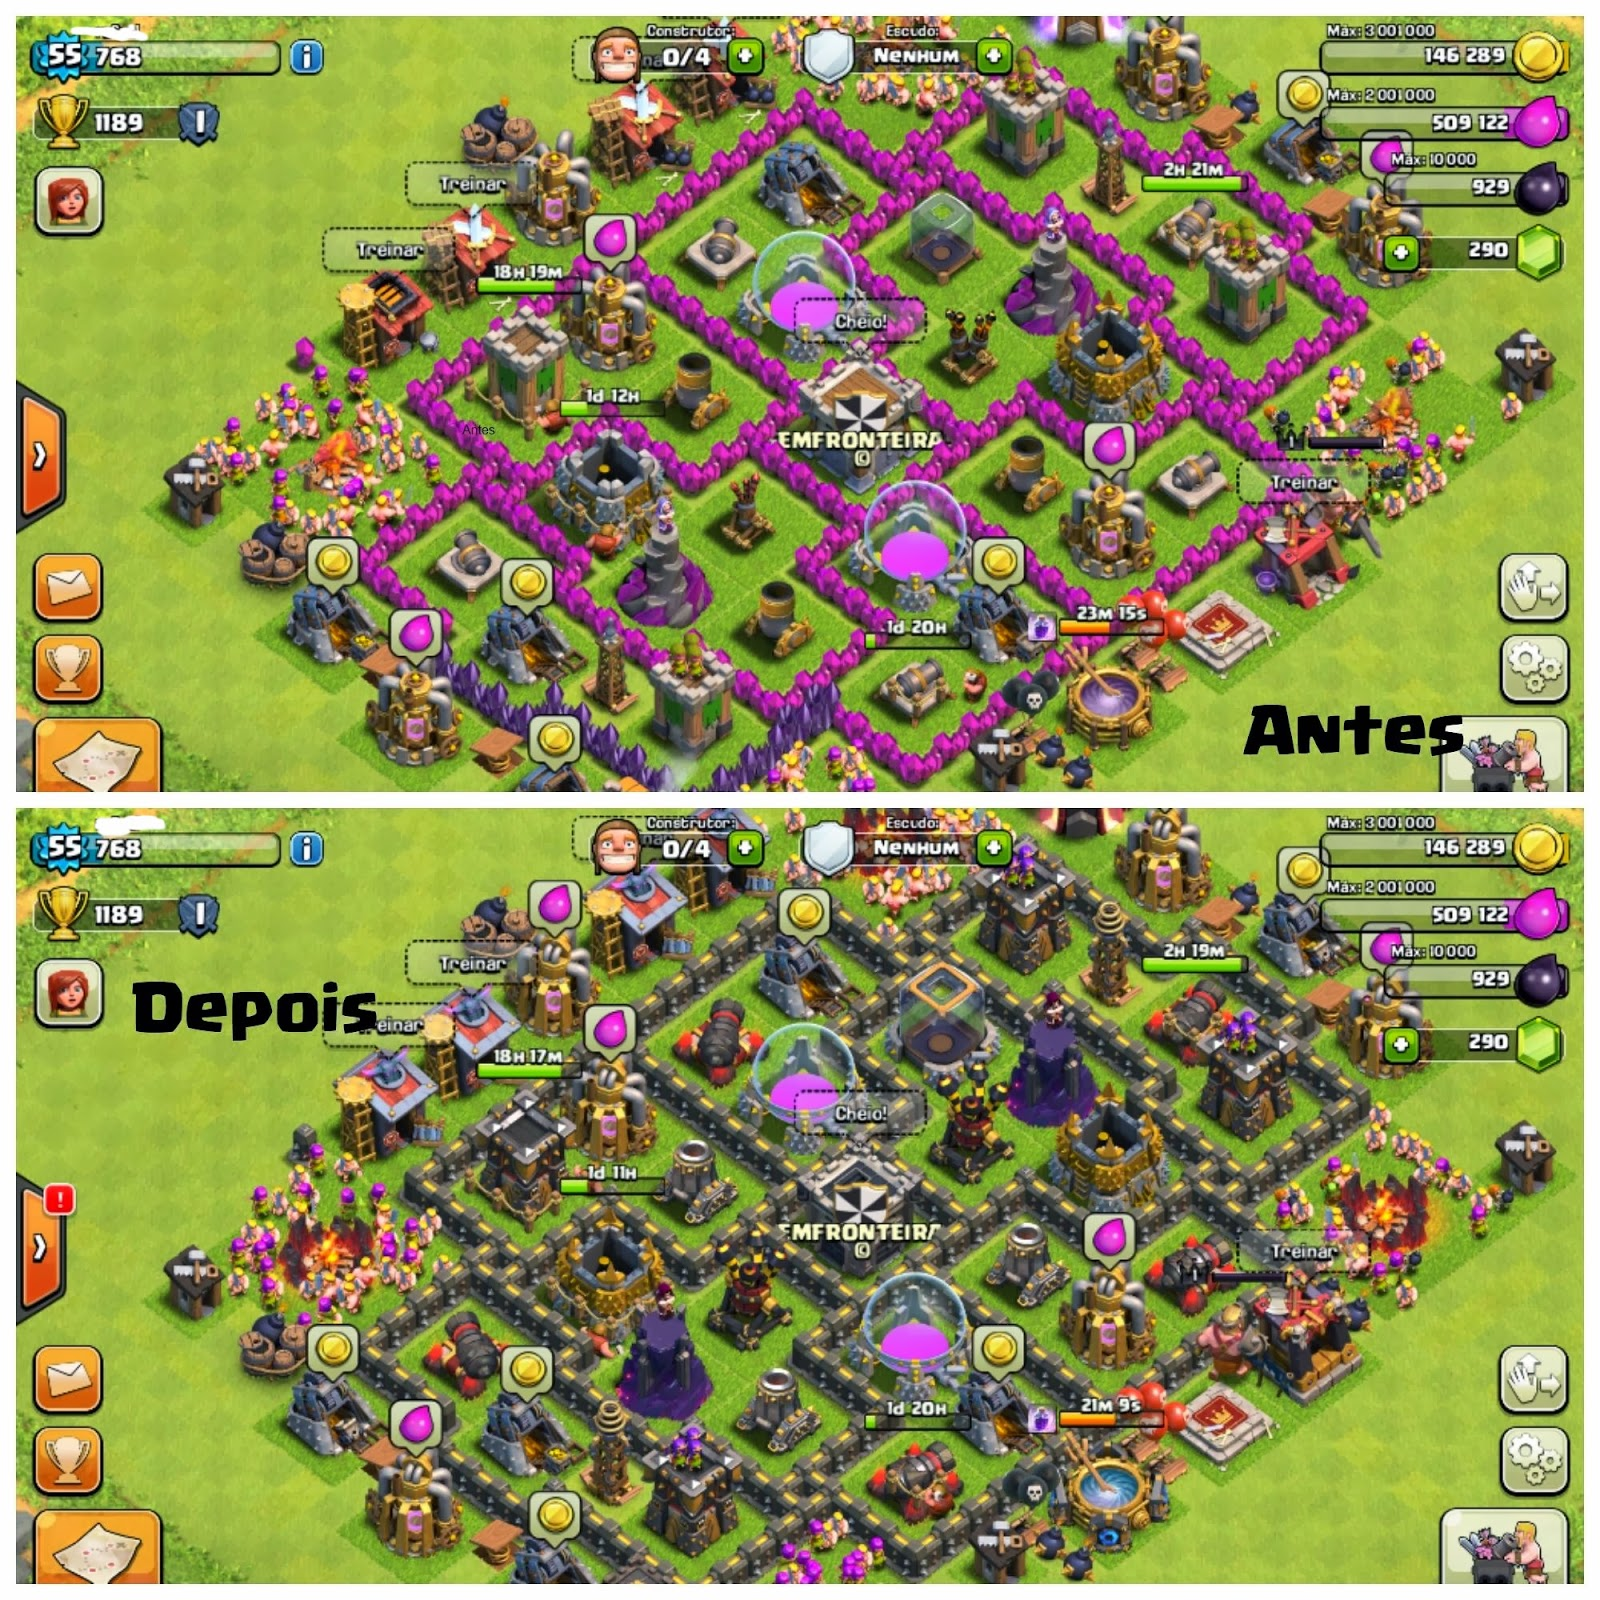 Tutorial - MOD Clash of Clans Android [Exclusivo]